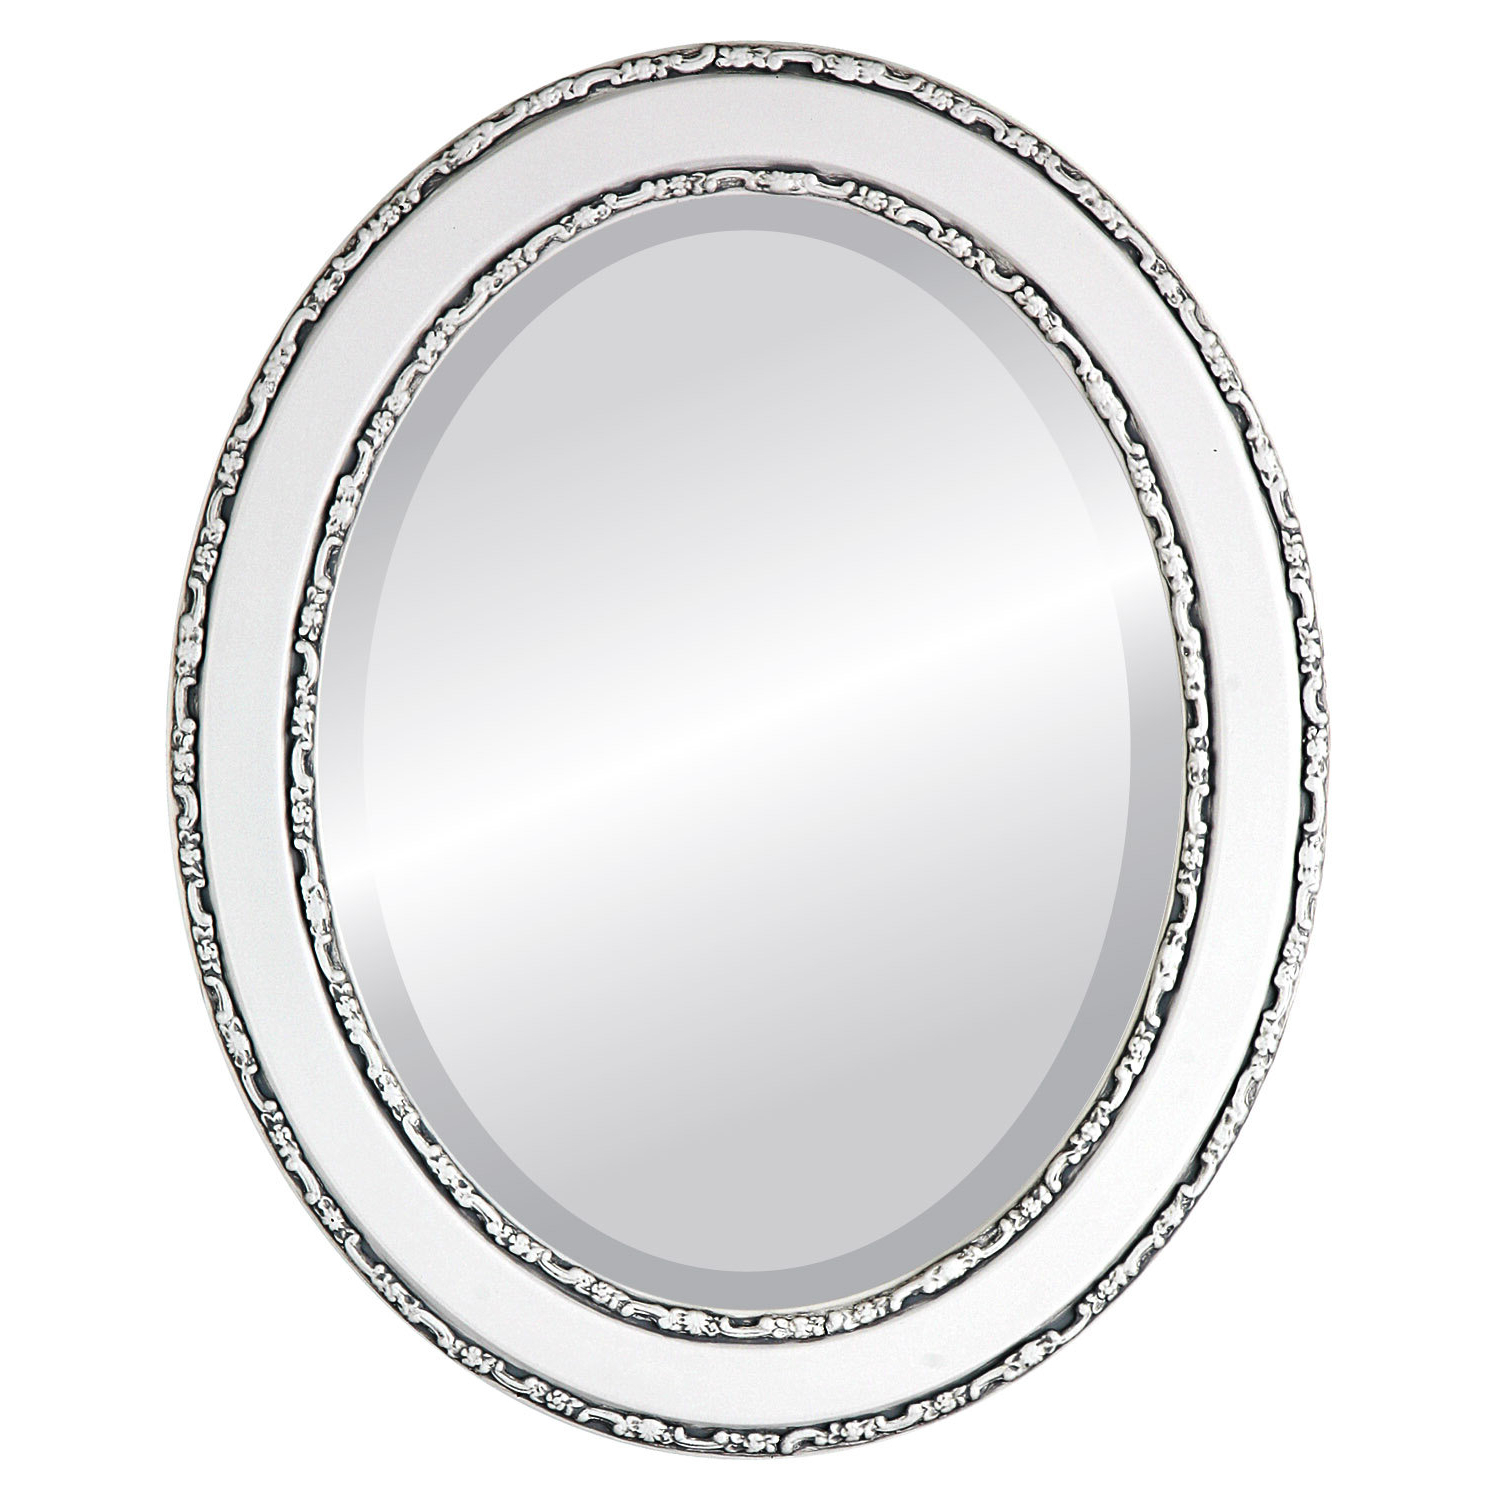 Minerva Oval Traditional Beveled Accent Mirror Pertaining To Popular Minerva Accent Mirrors (View 15 of 20)